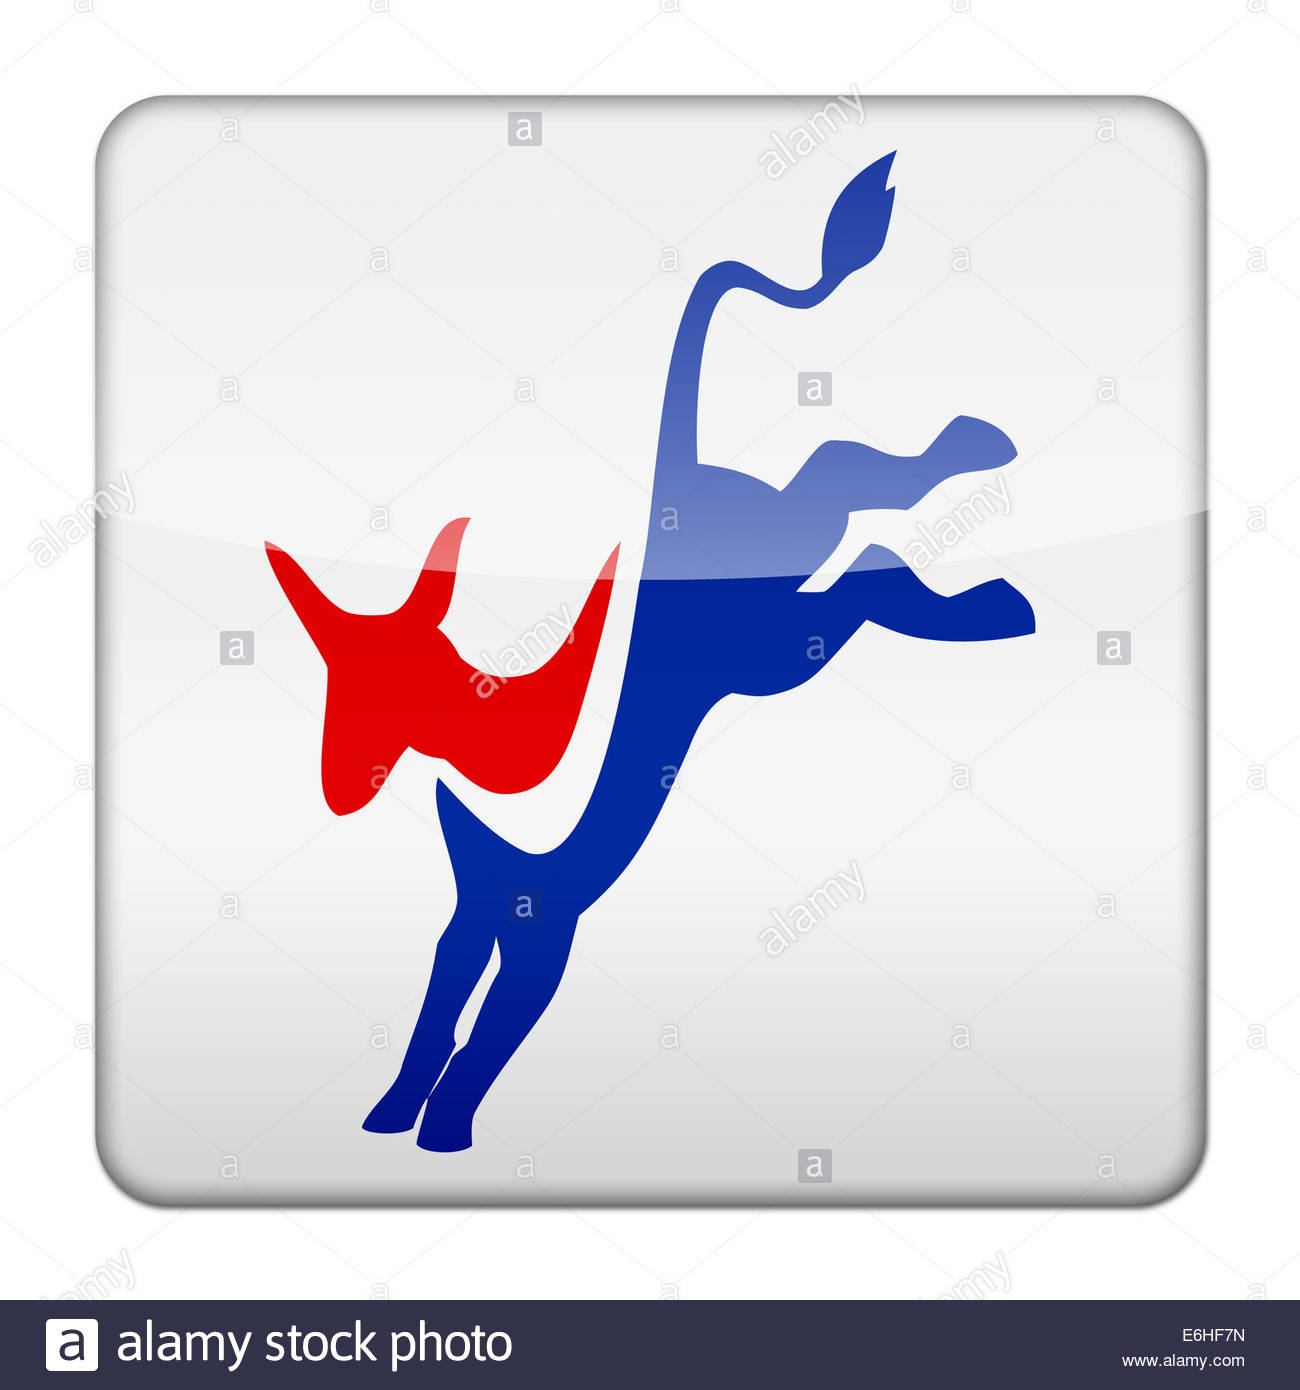 Democratic Party logo icon isolated app button - Stock Image